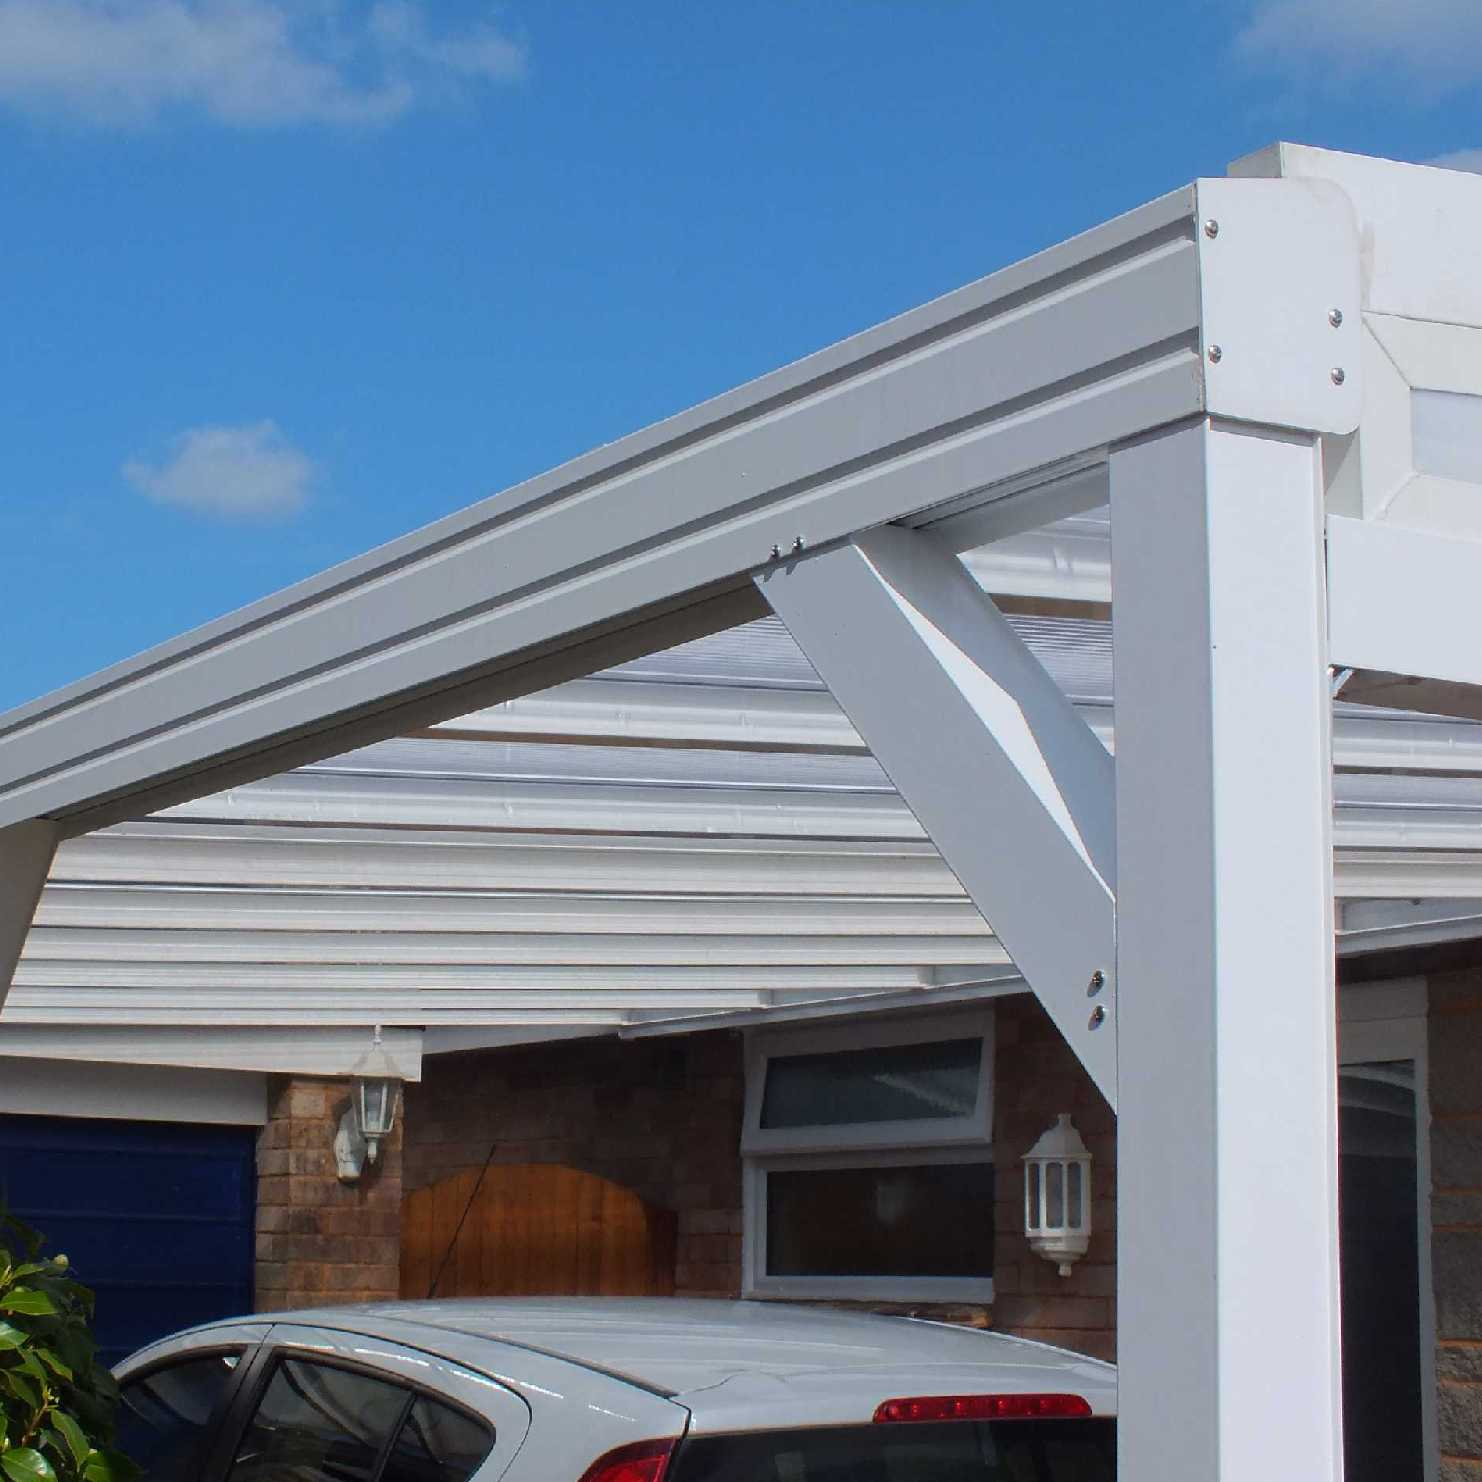 Buy Omega Smart White Lean-To Canopy with 16mm Polycarbonate Glazing - 3.1m (W) x 2.0m (P), (2) Supporting Posts online today